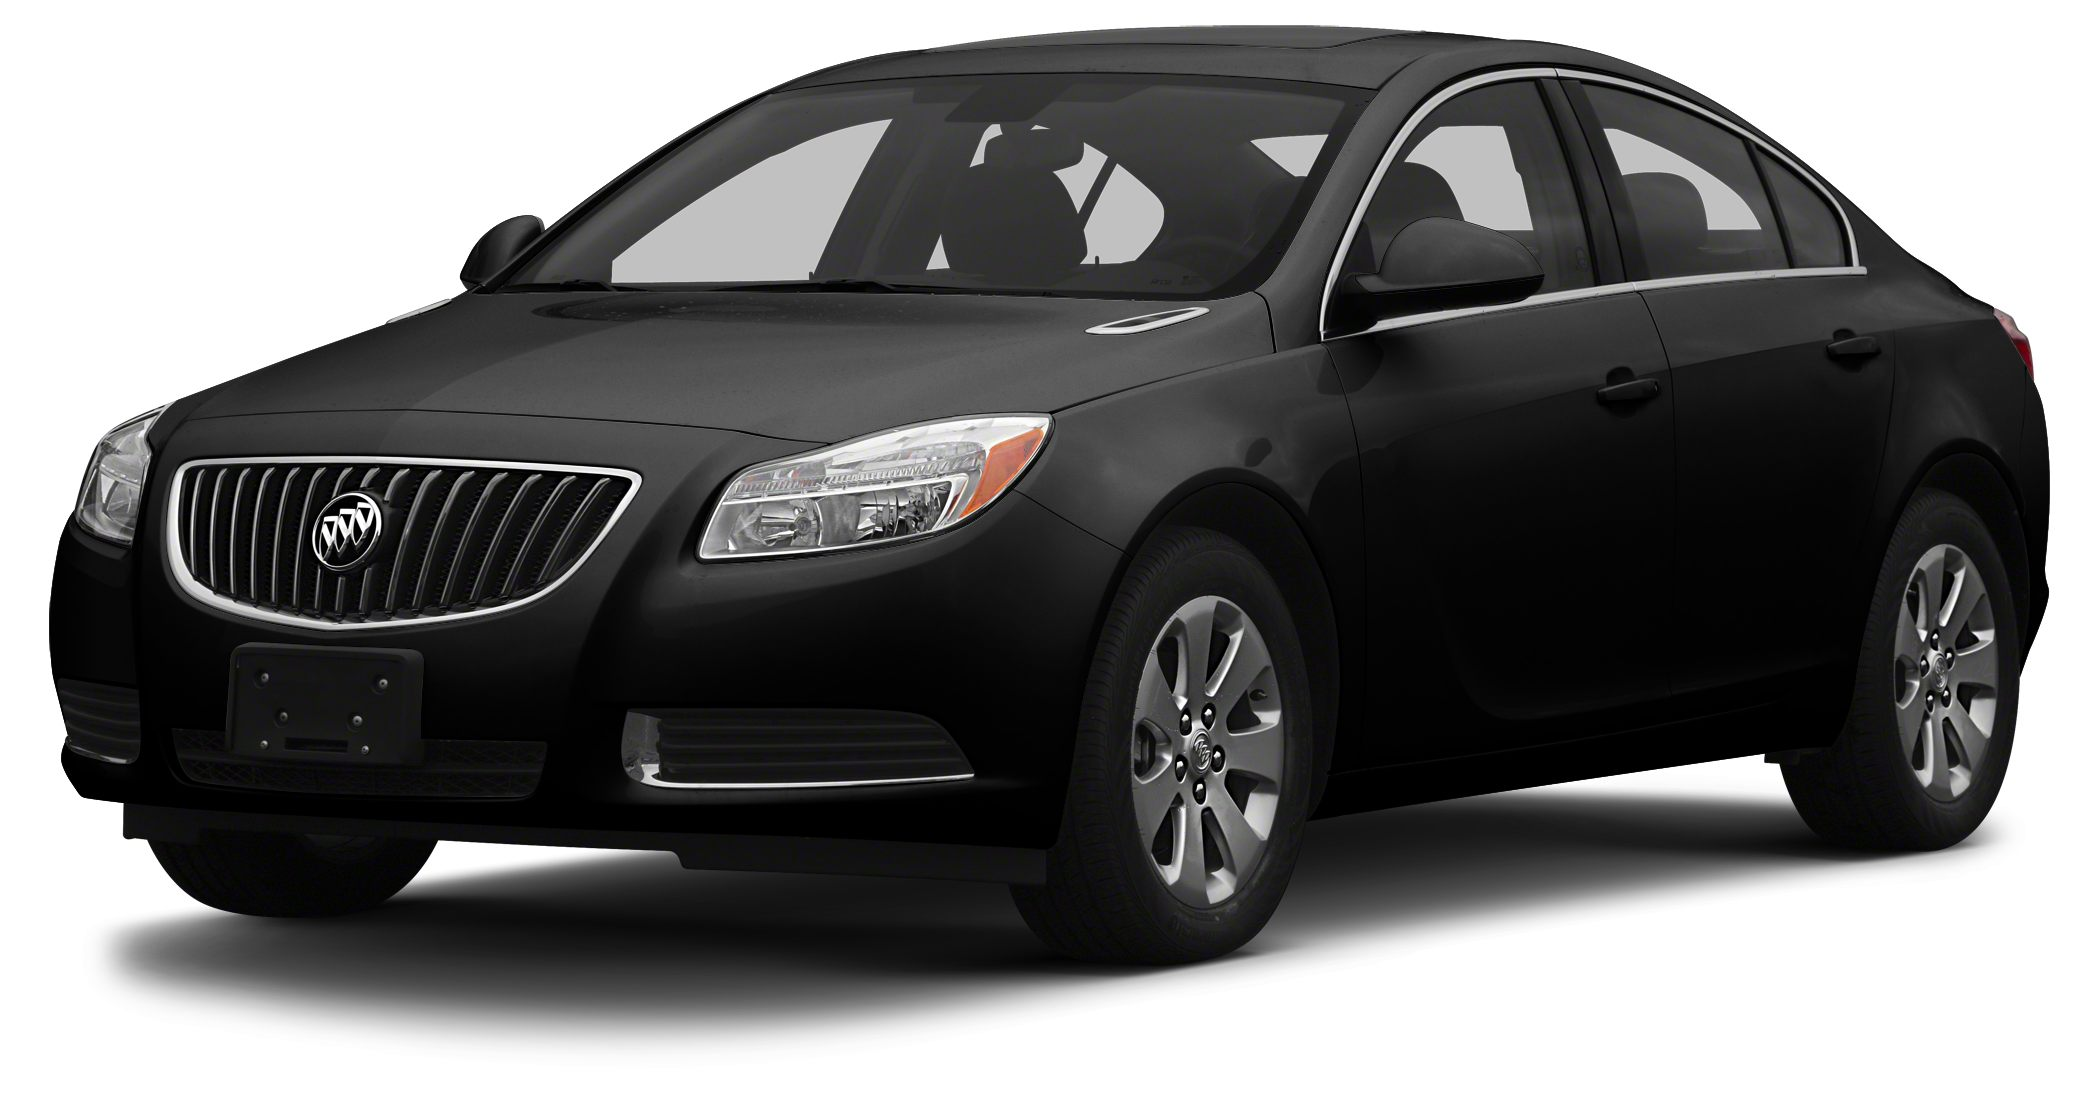 2013 Buick Regal Turbo - Premium 2 EPA 29 MPG Hwy18 MPG City Excellent Condition ONLY 26875 Mi